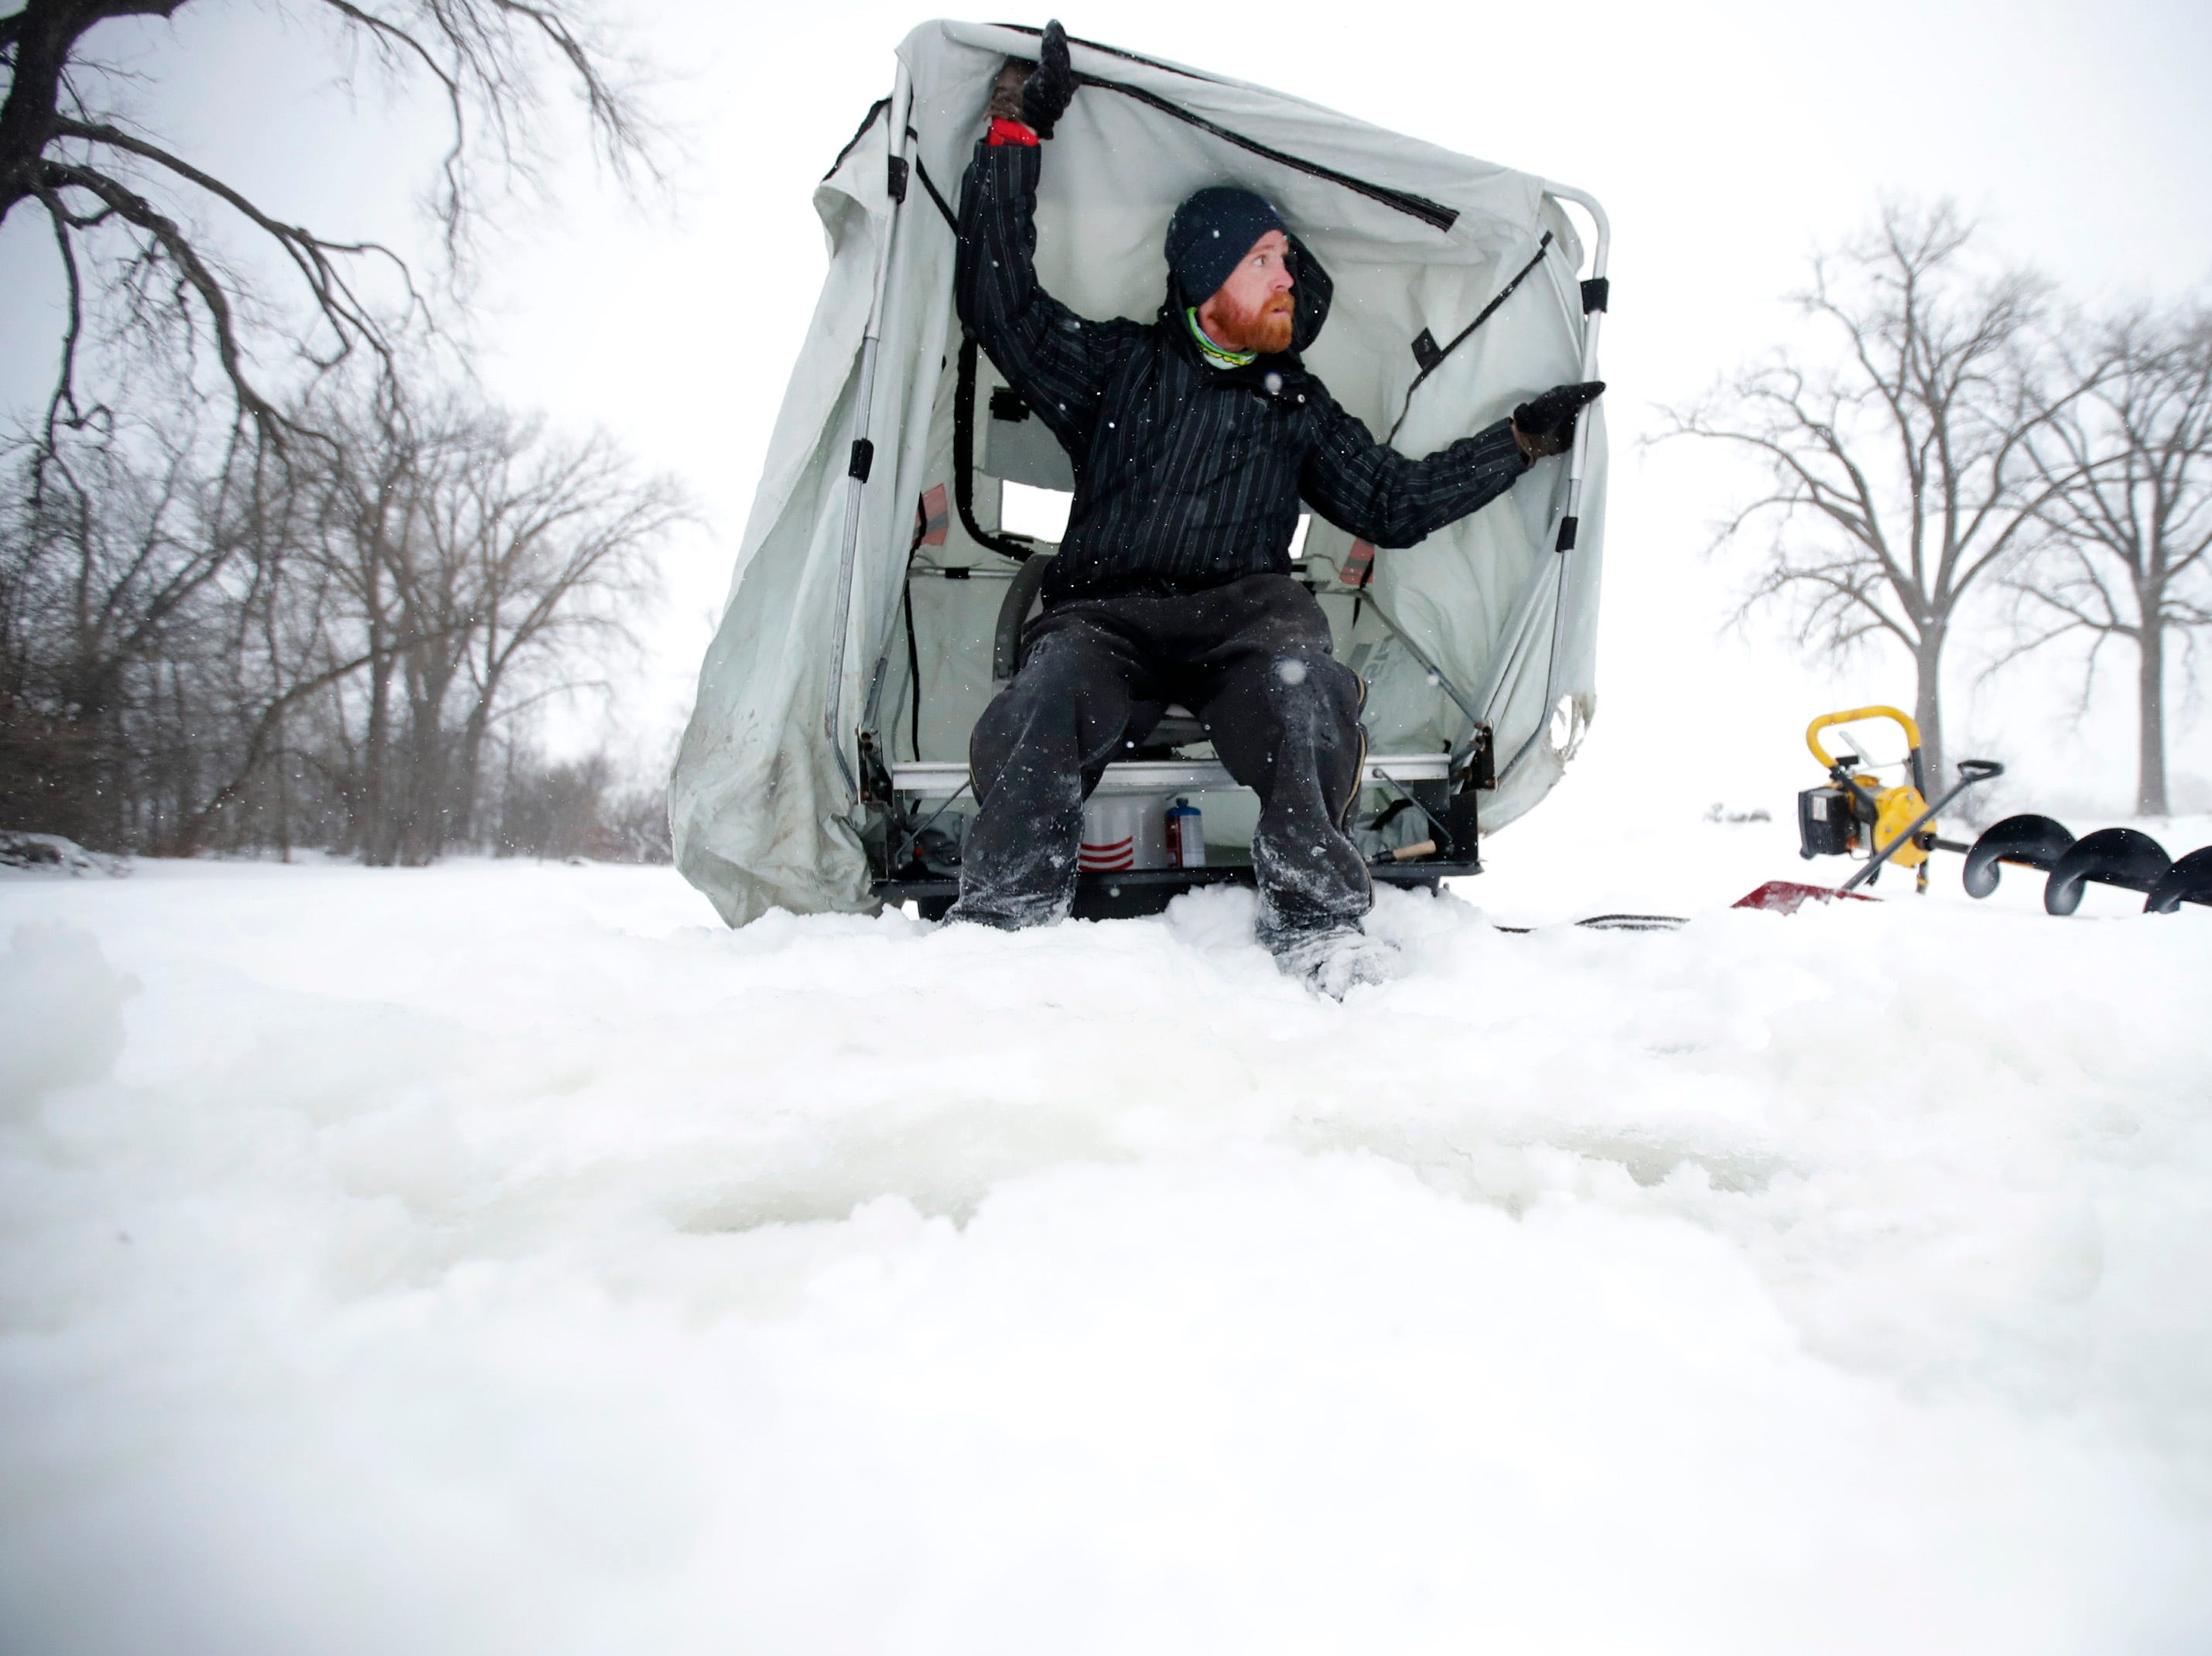 Steve Montgomery, of Menasha, pulls his portable ice shanty over his head as he prepares to go ice fishing during the snowstorm that hit the area Monday, Jan. 28, 2019, in Menasha, Wis.